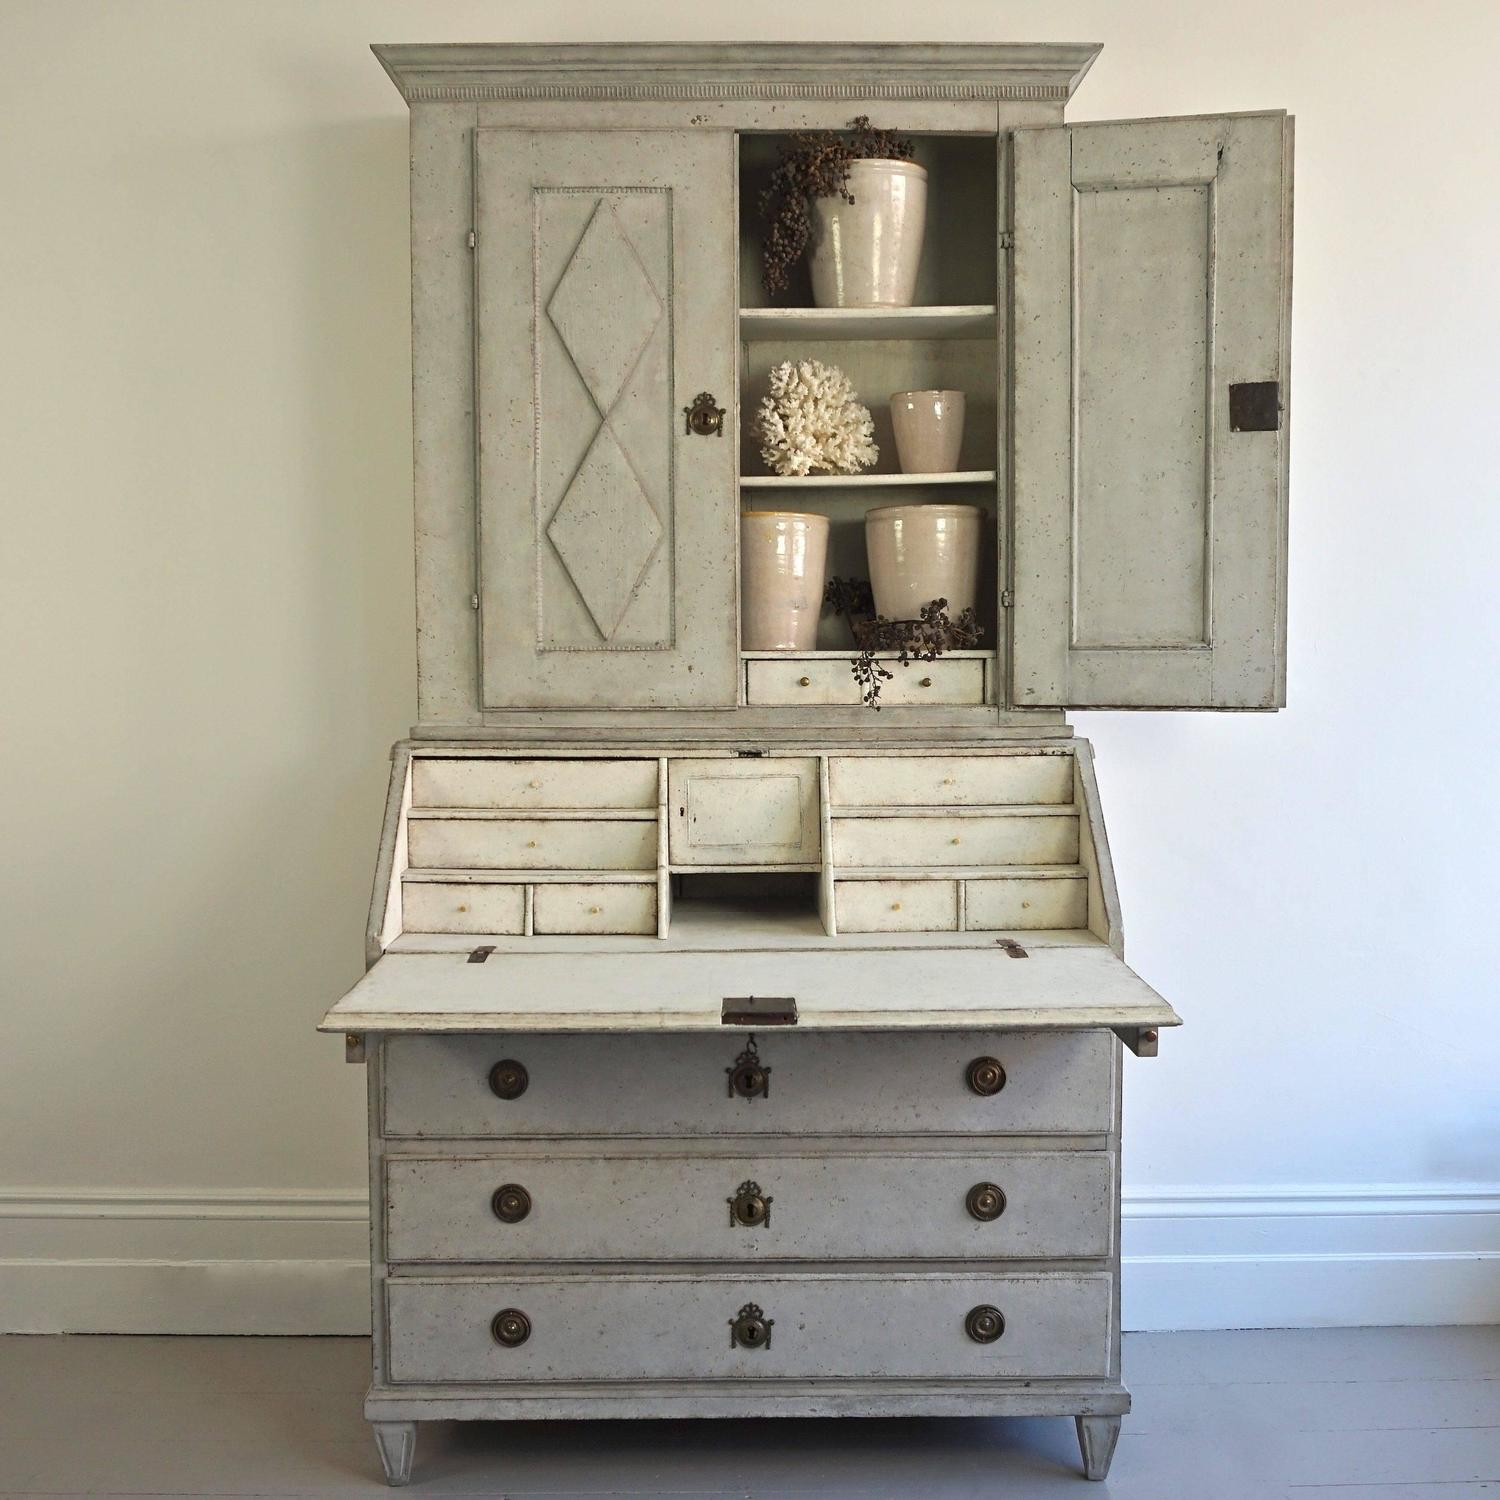 18th century swedish gustavian period secretaire bureau for sale at 1stdibs. Black Bedroom Furniture Sets. Home Design Ideas